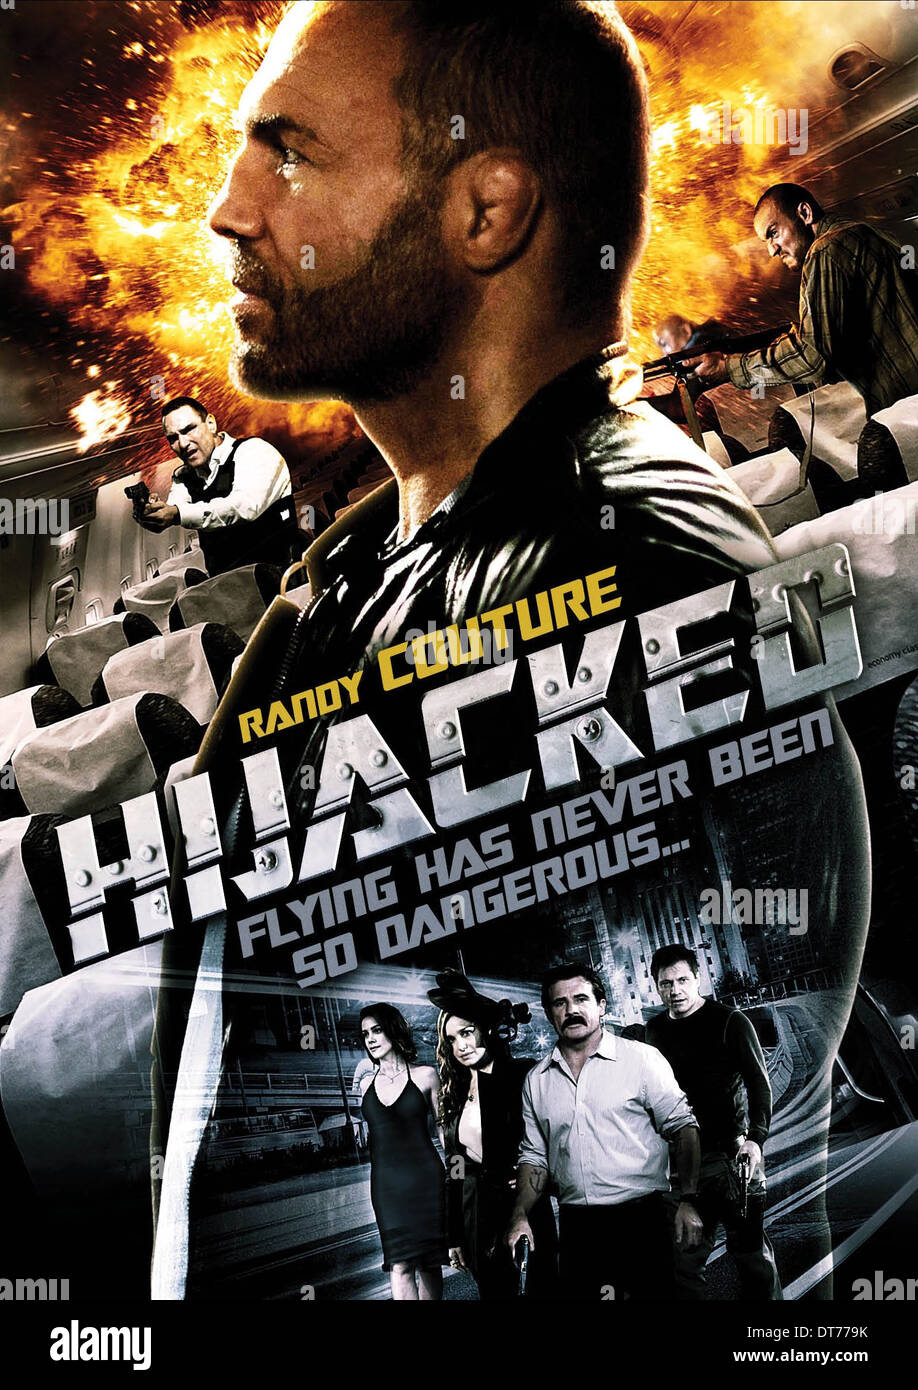 RANDY COUTURE POSTER HIJACKED (2012) - Stock Image